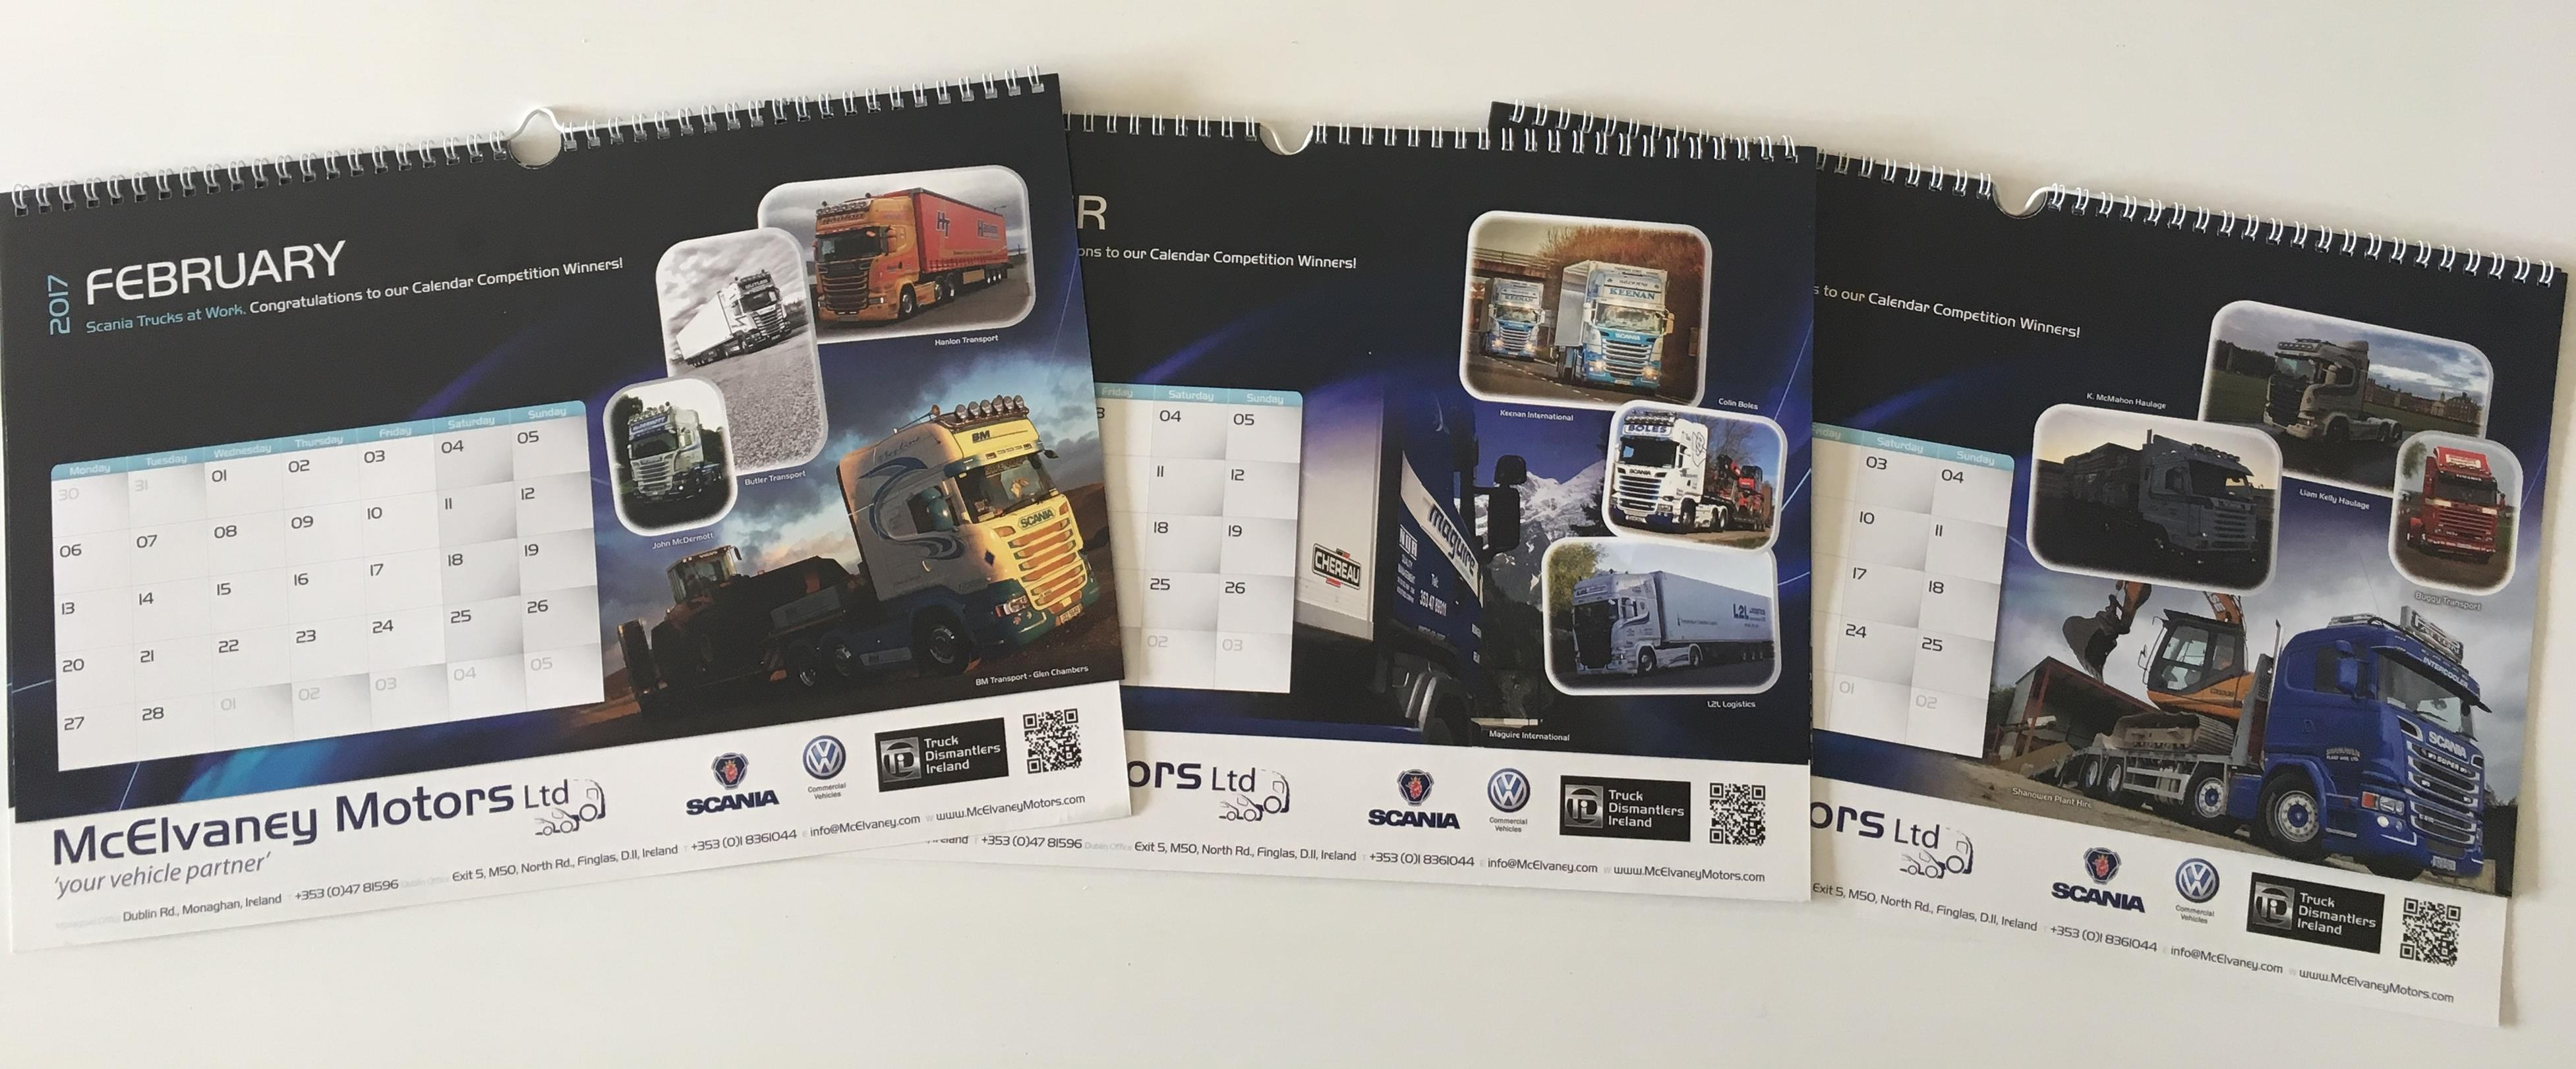 Final Reminder of Calendar Competition Entries